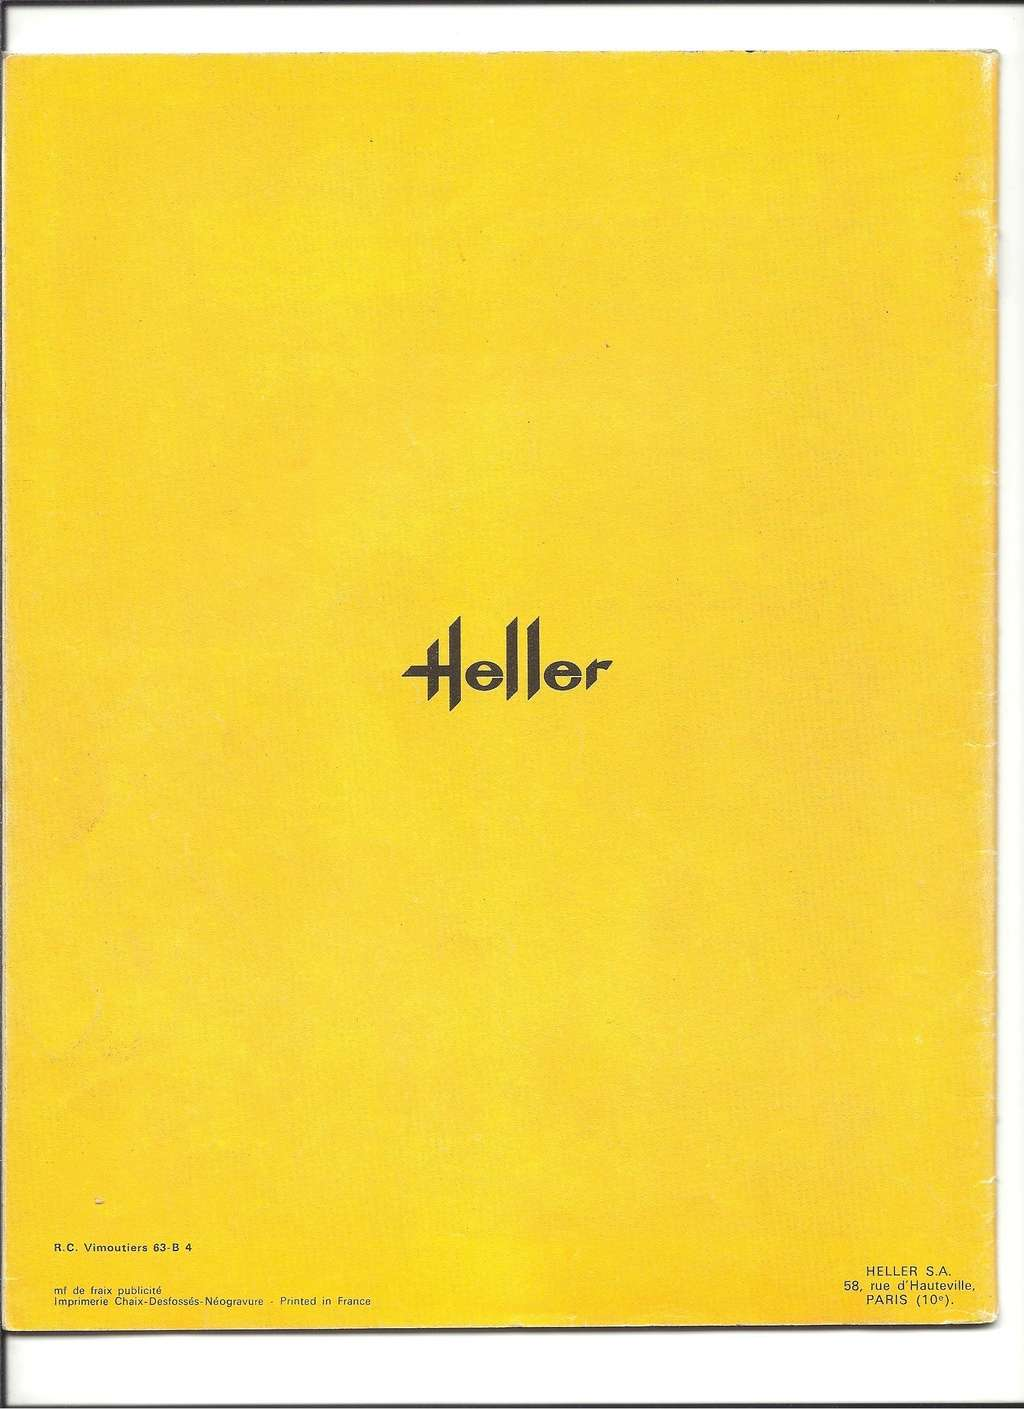 [1971] Catalogue 1971 Heller91